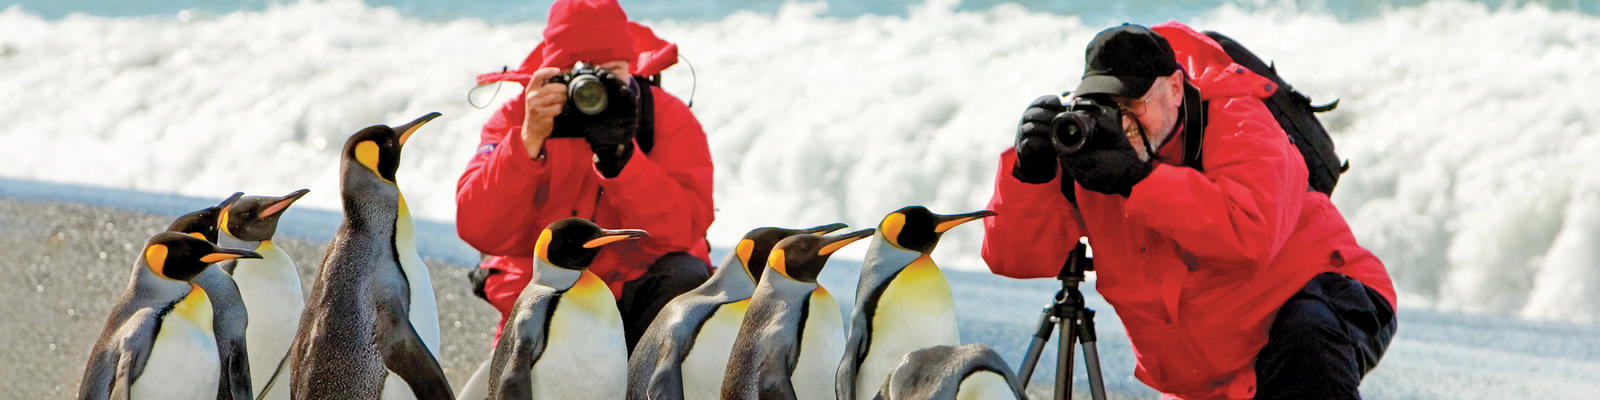 Guests Get Unique Vantage Point for Photographing King Penguins (Photo: Lindbland Expeditions)